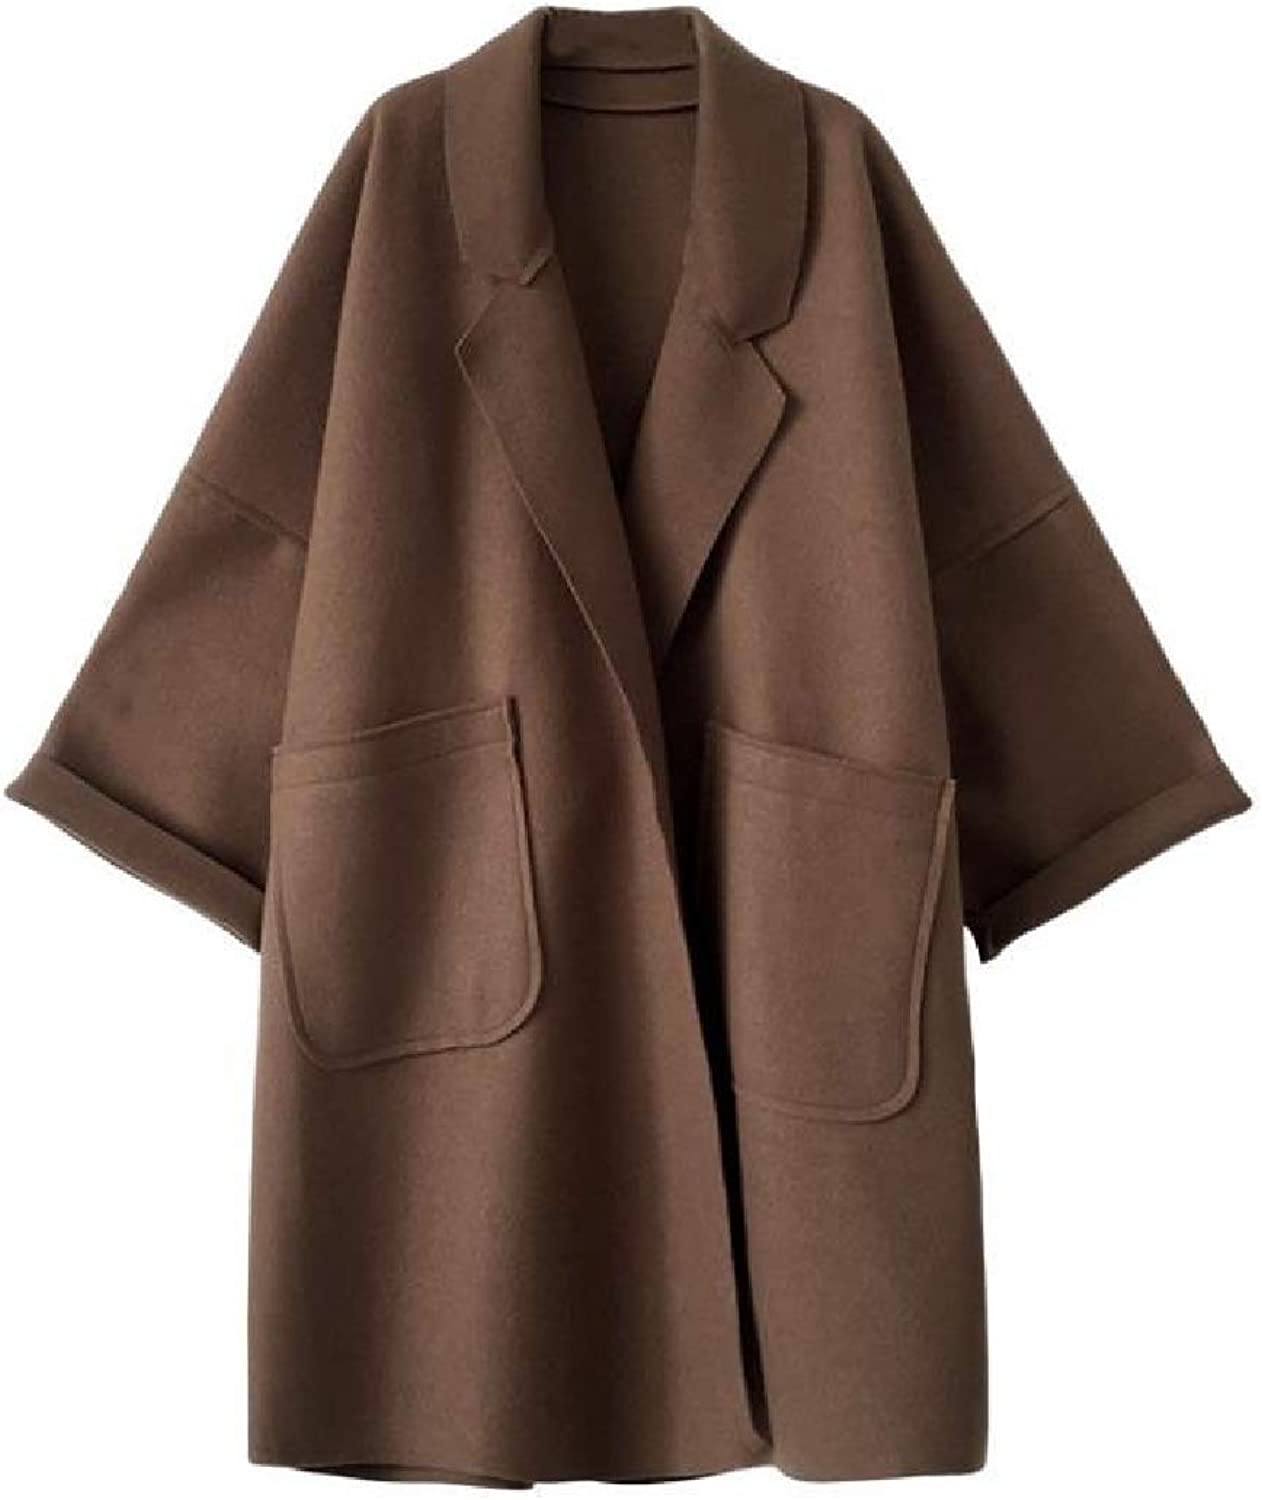 Beeatree Side Waist Pockets Turn Down Collar Thick Knee Length Cocoon Coat